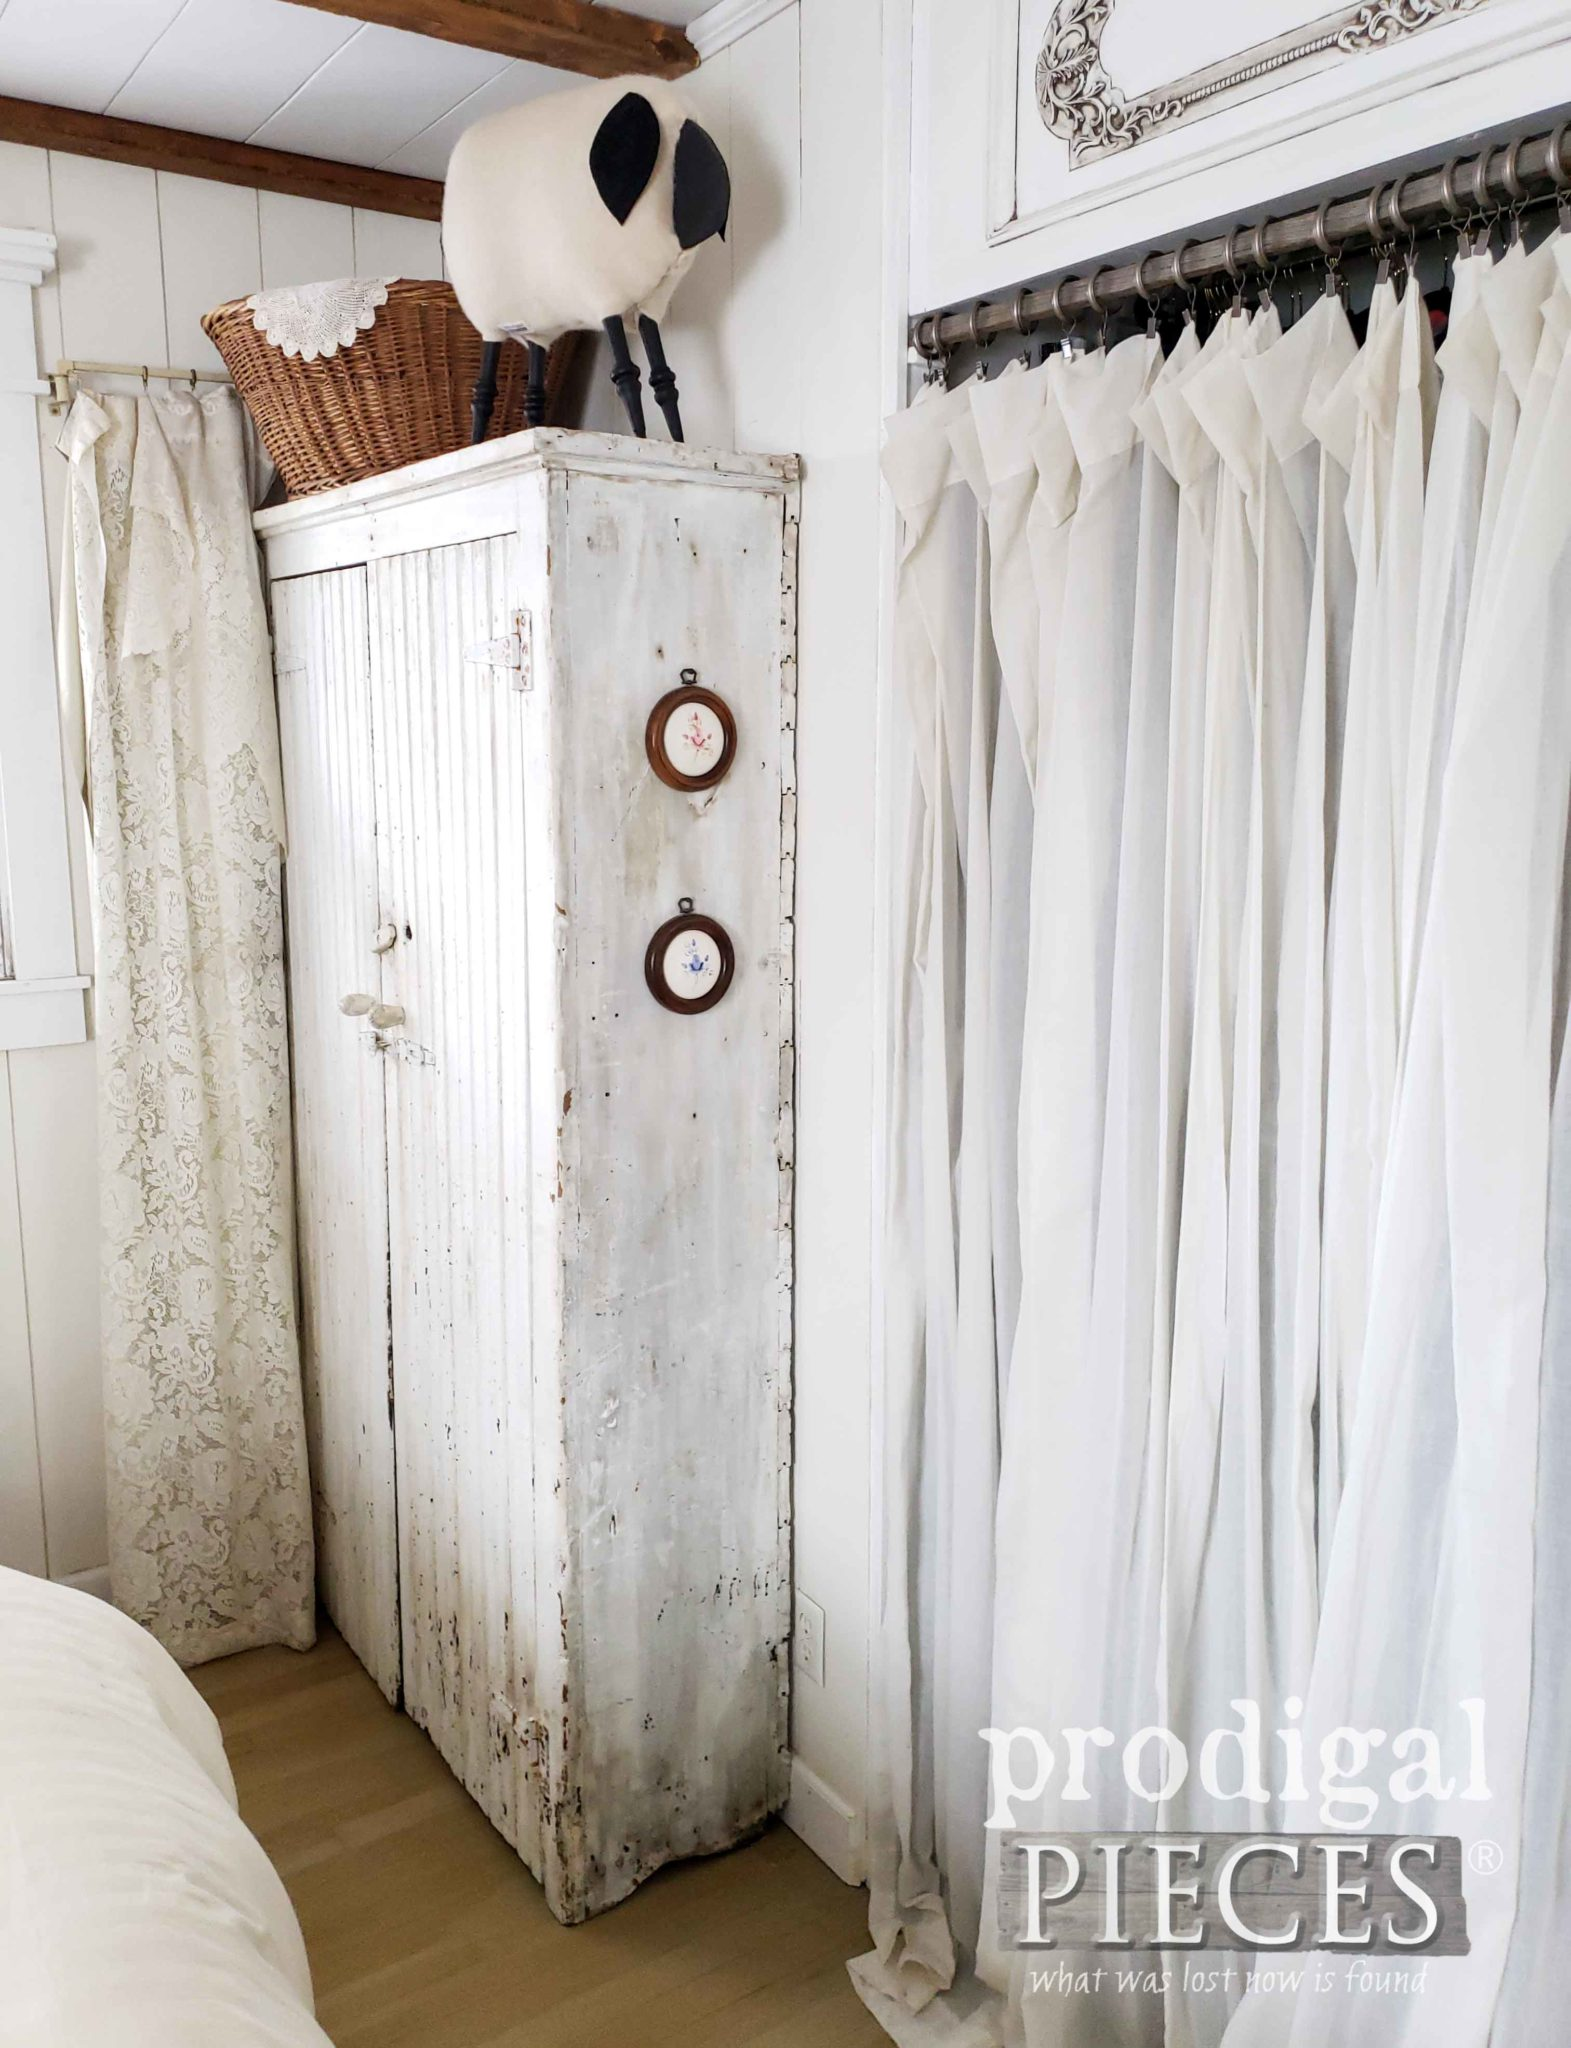 Farmhouse Bedroom with Closet Transom and Repurposed Decor by Larissa of Prodigal Pieces | prodigalpieces.com #prodigalpieces #diy #home #furniture #tutorial #homedecor #farmhouse #homedecorideas